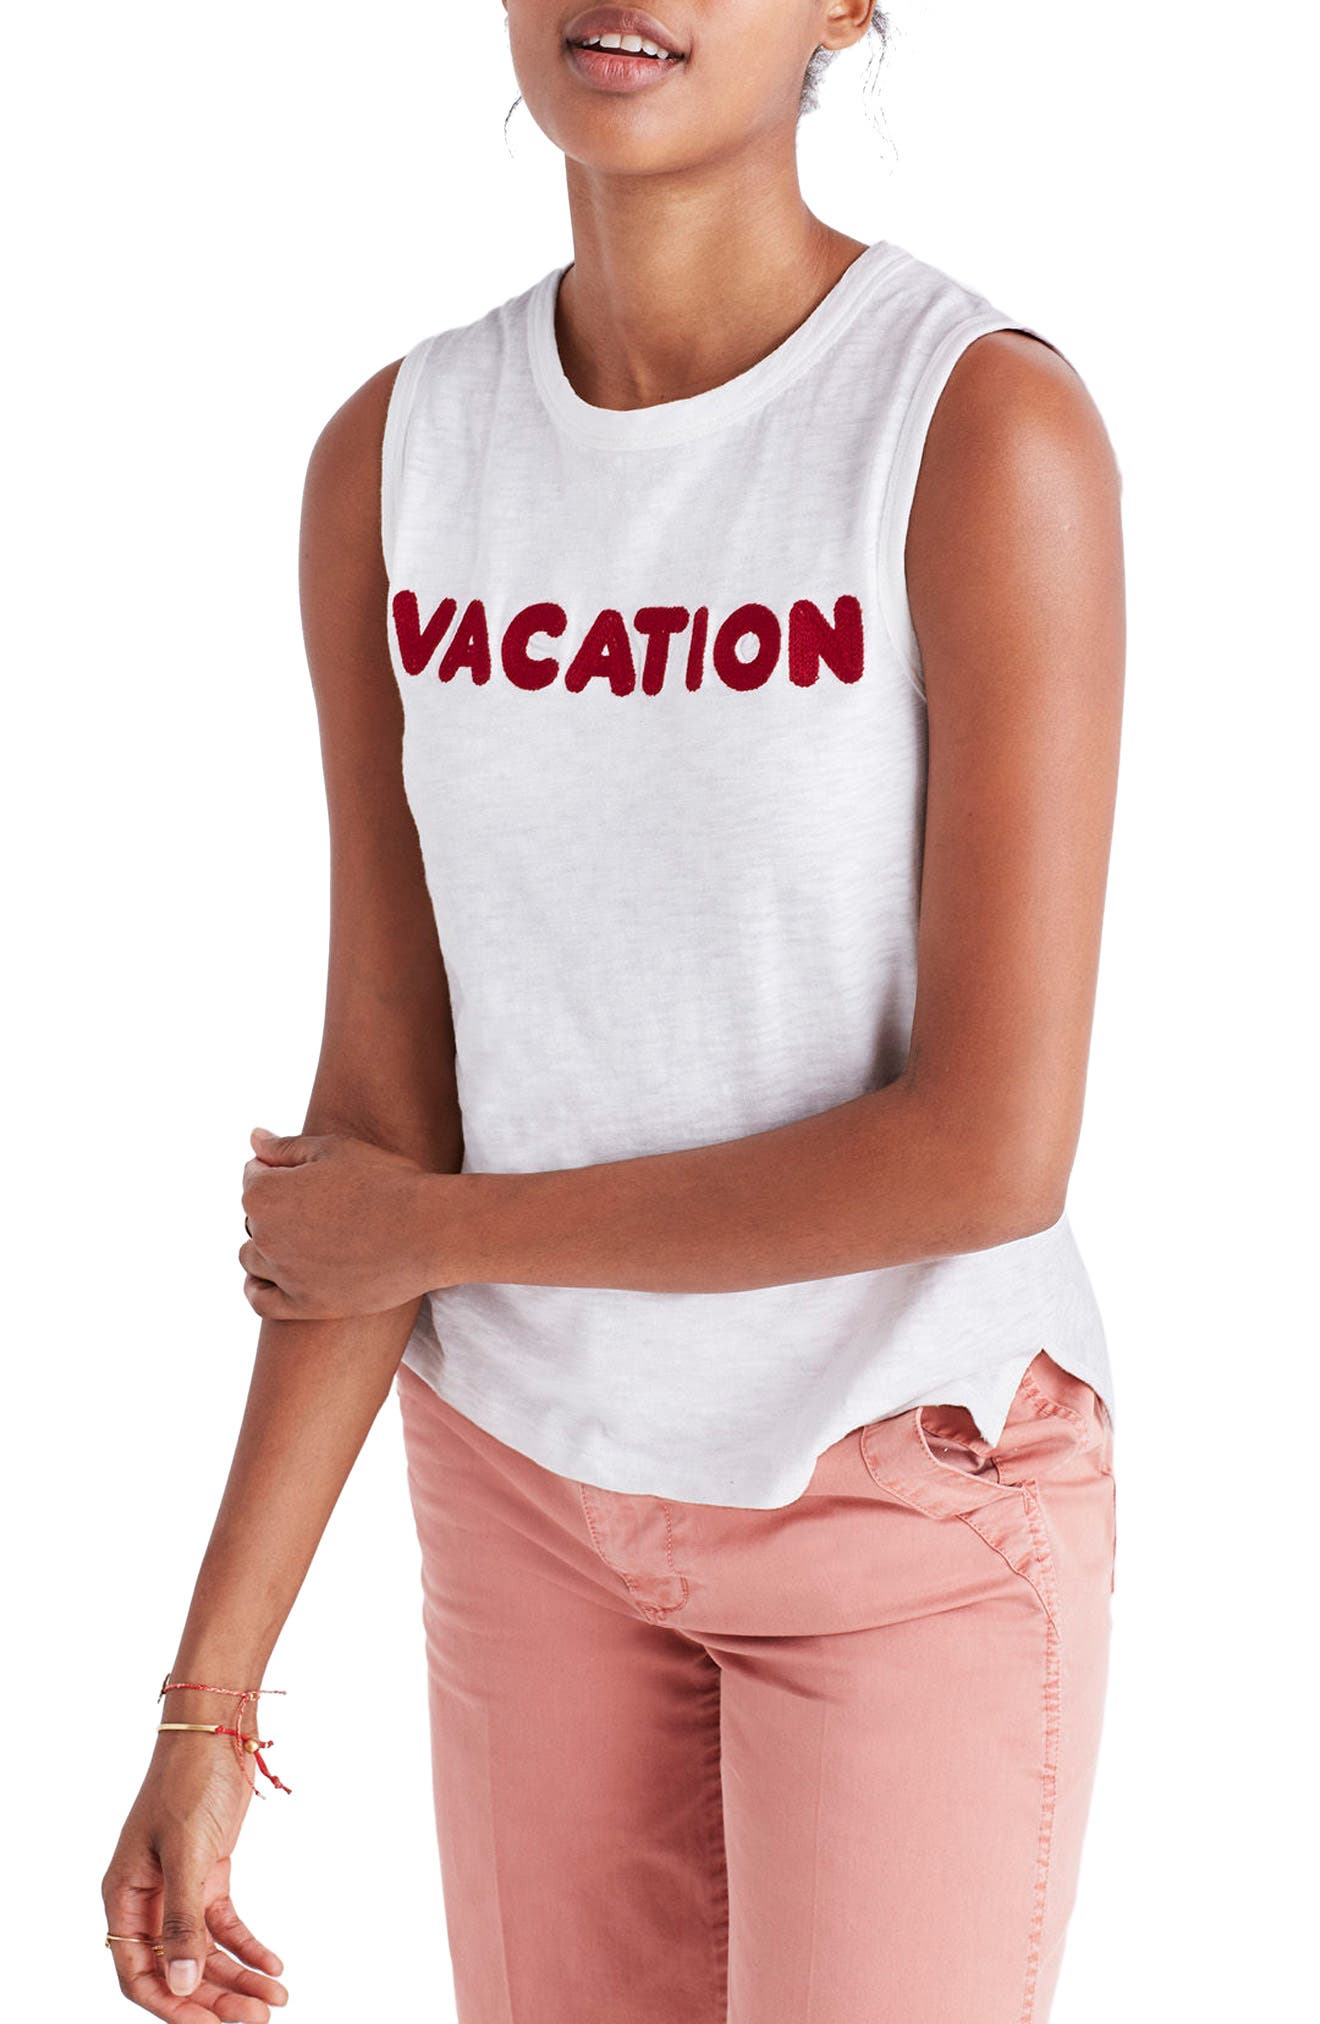 Alternate Image 1 Selected - Madewell Vacation Embroidered Tank